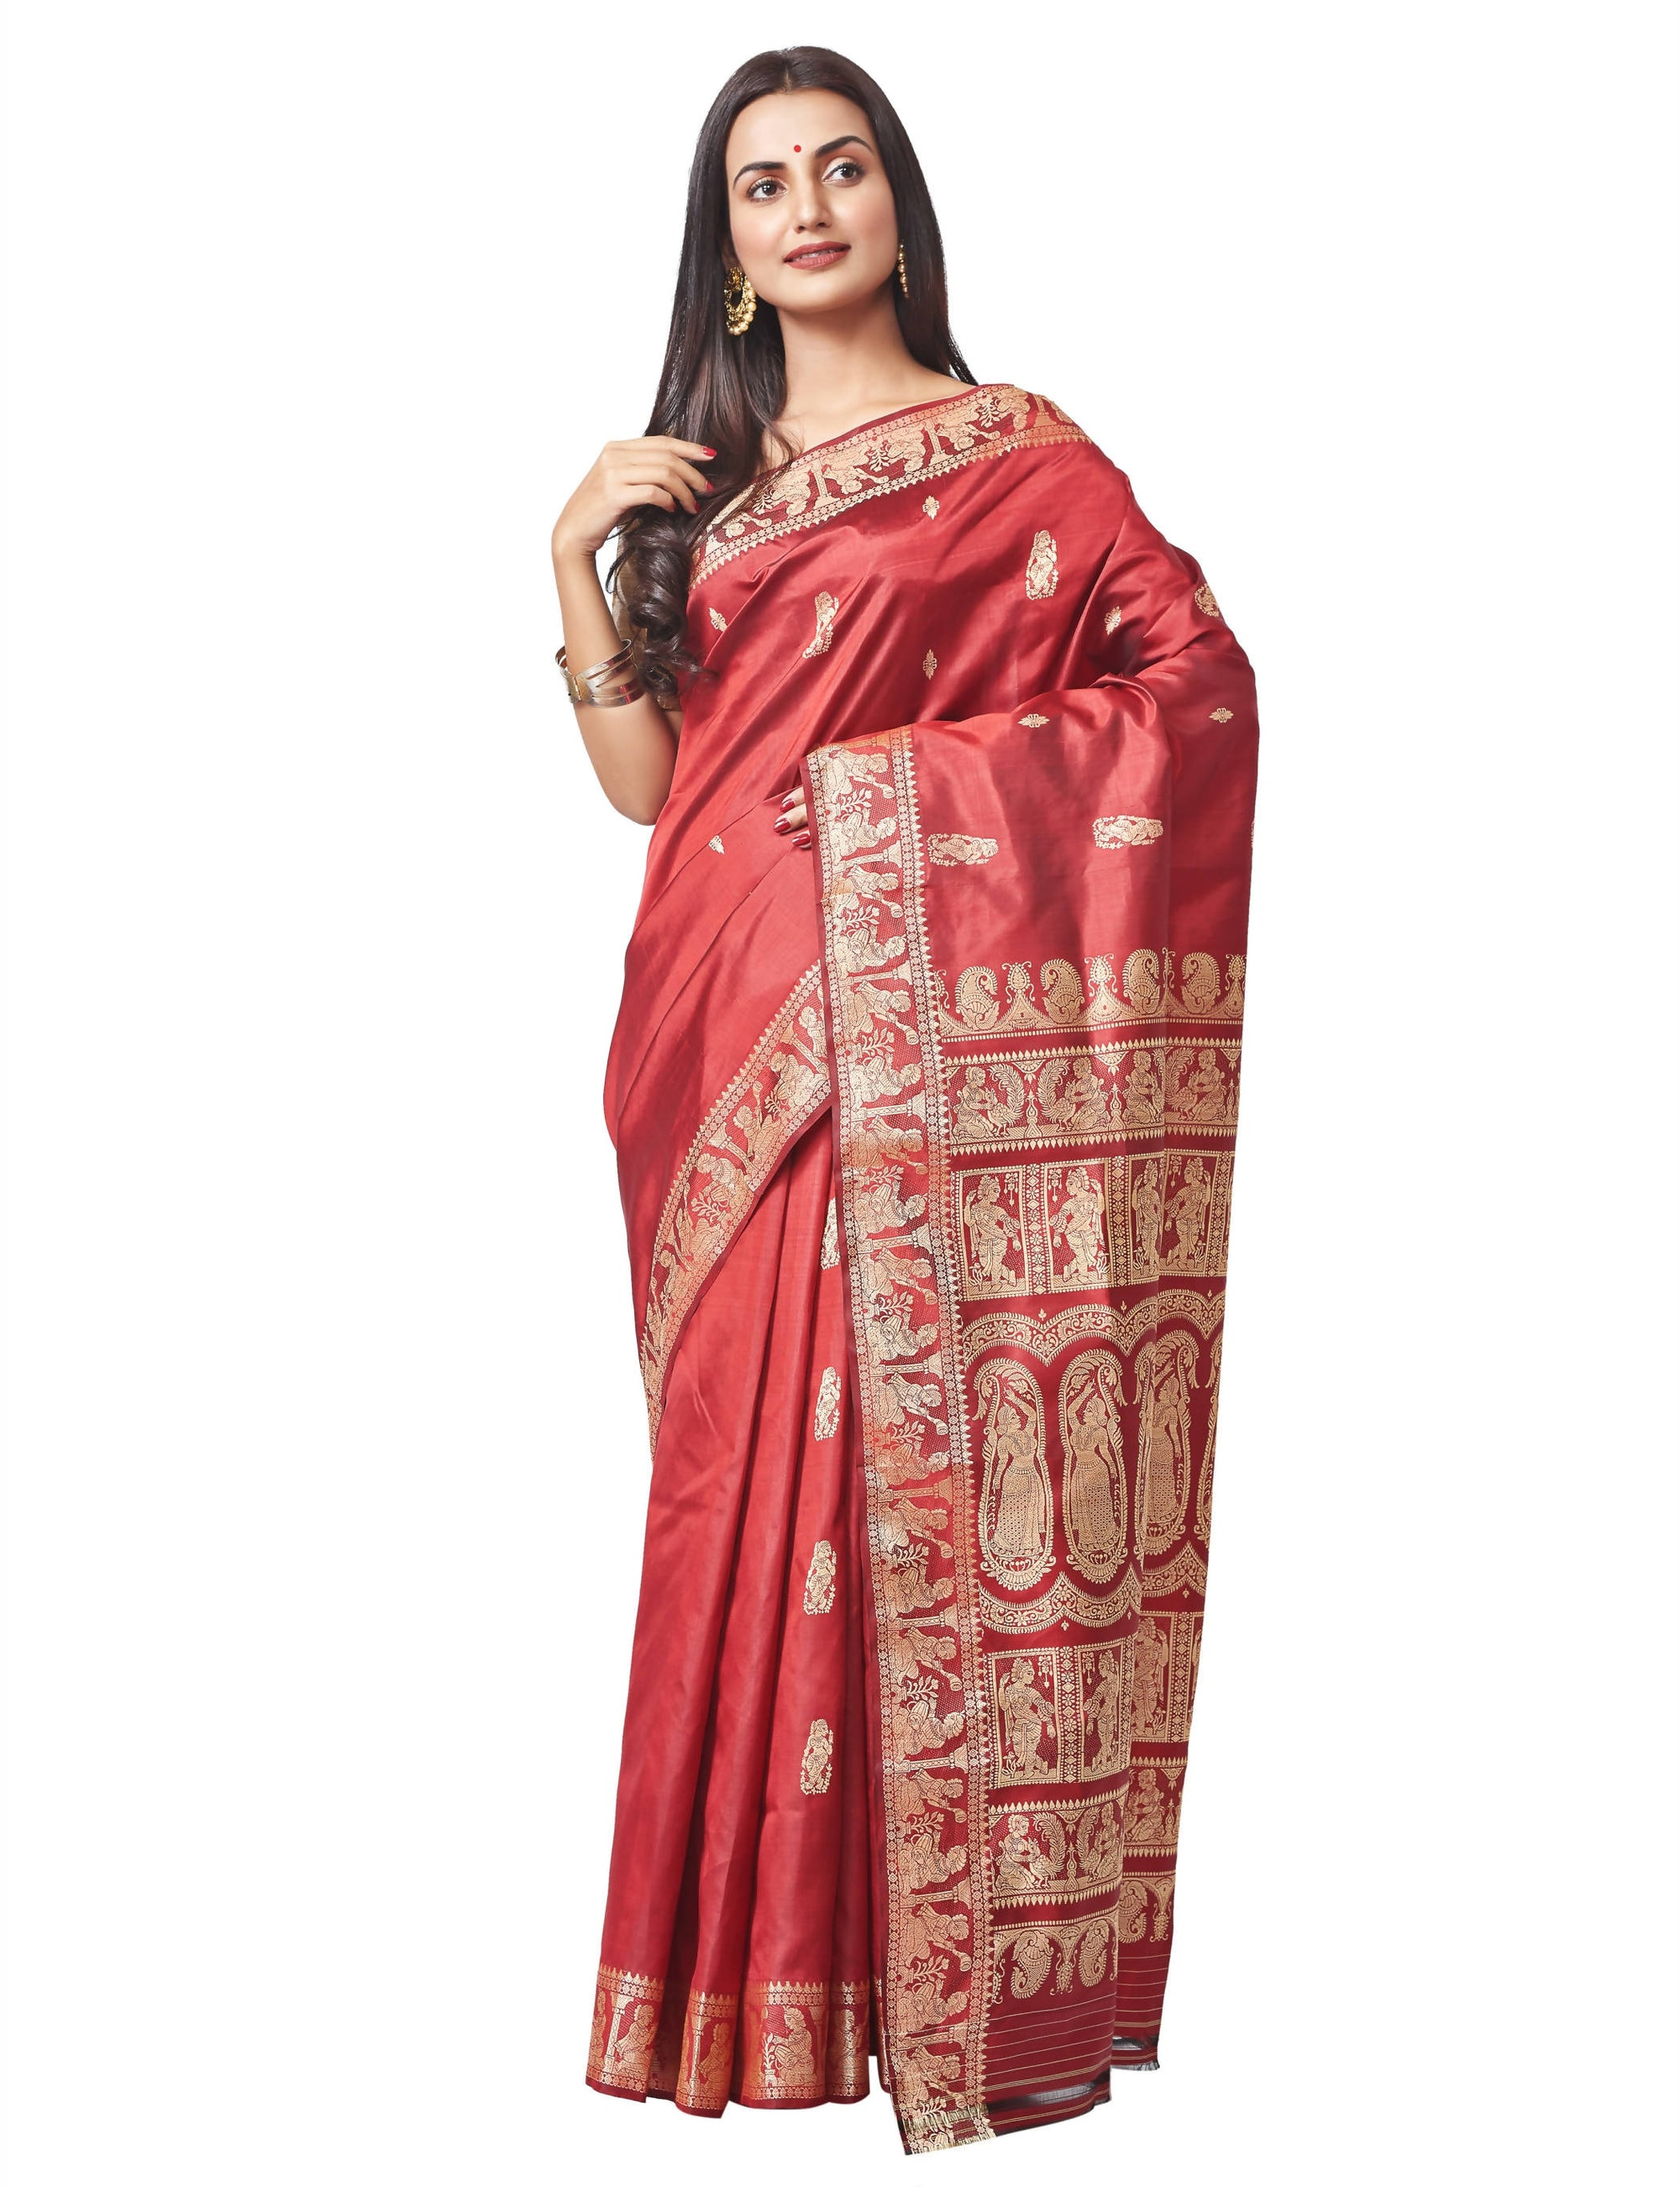 Biswa Bangla Handloom Baluchari Silk Saree - Rust